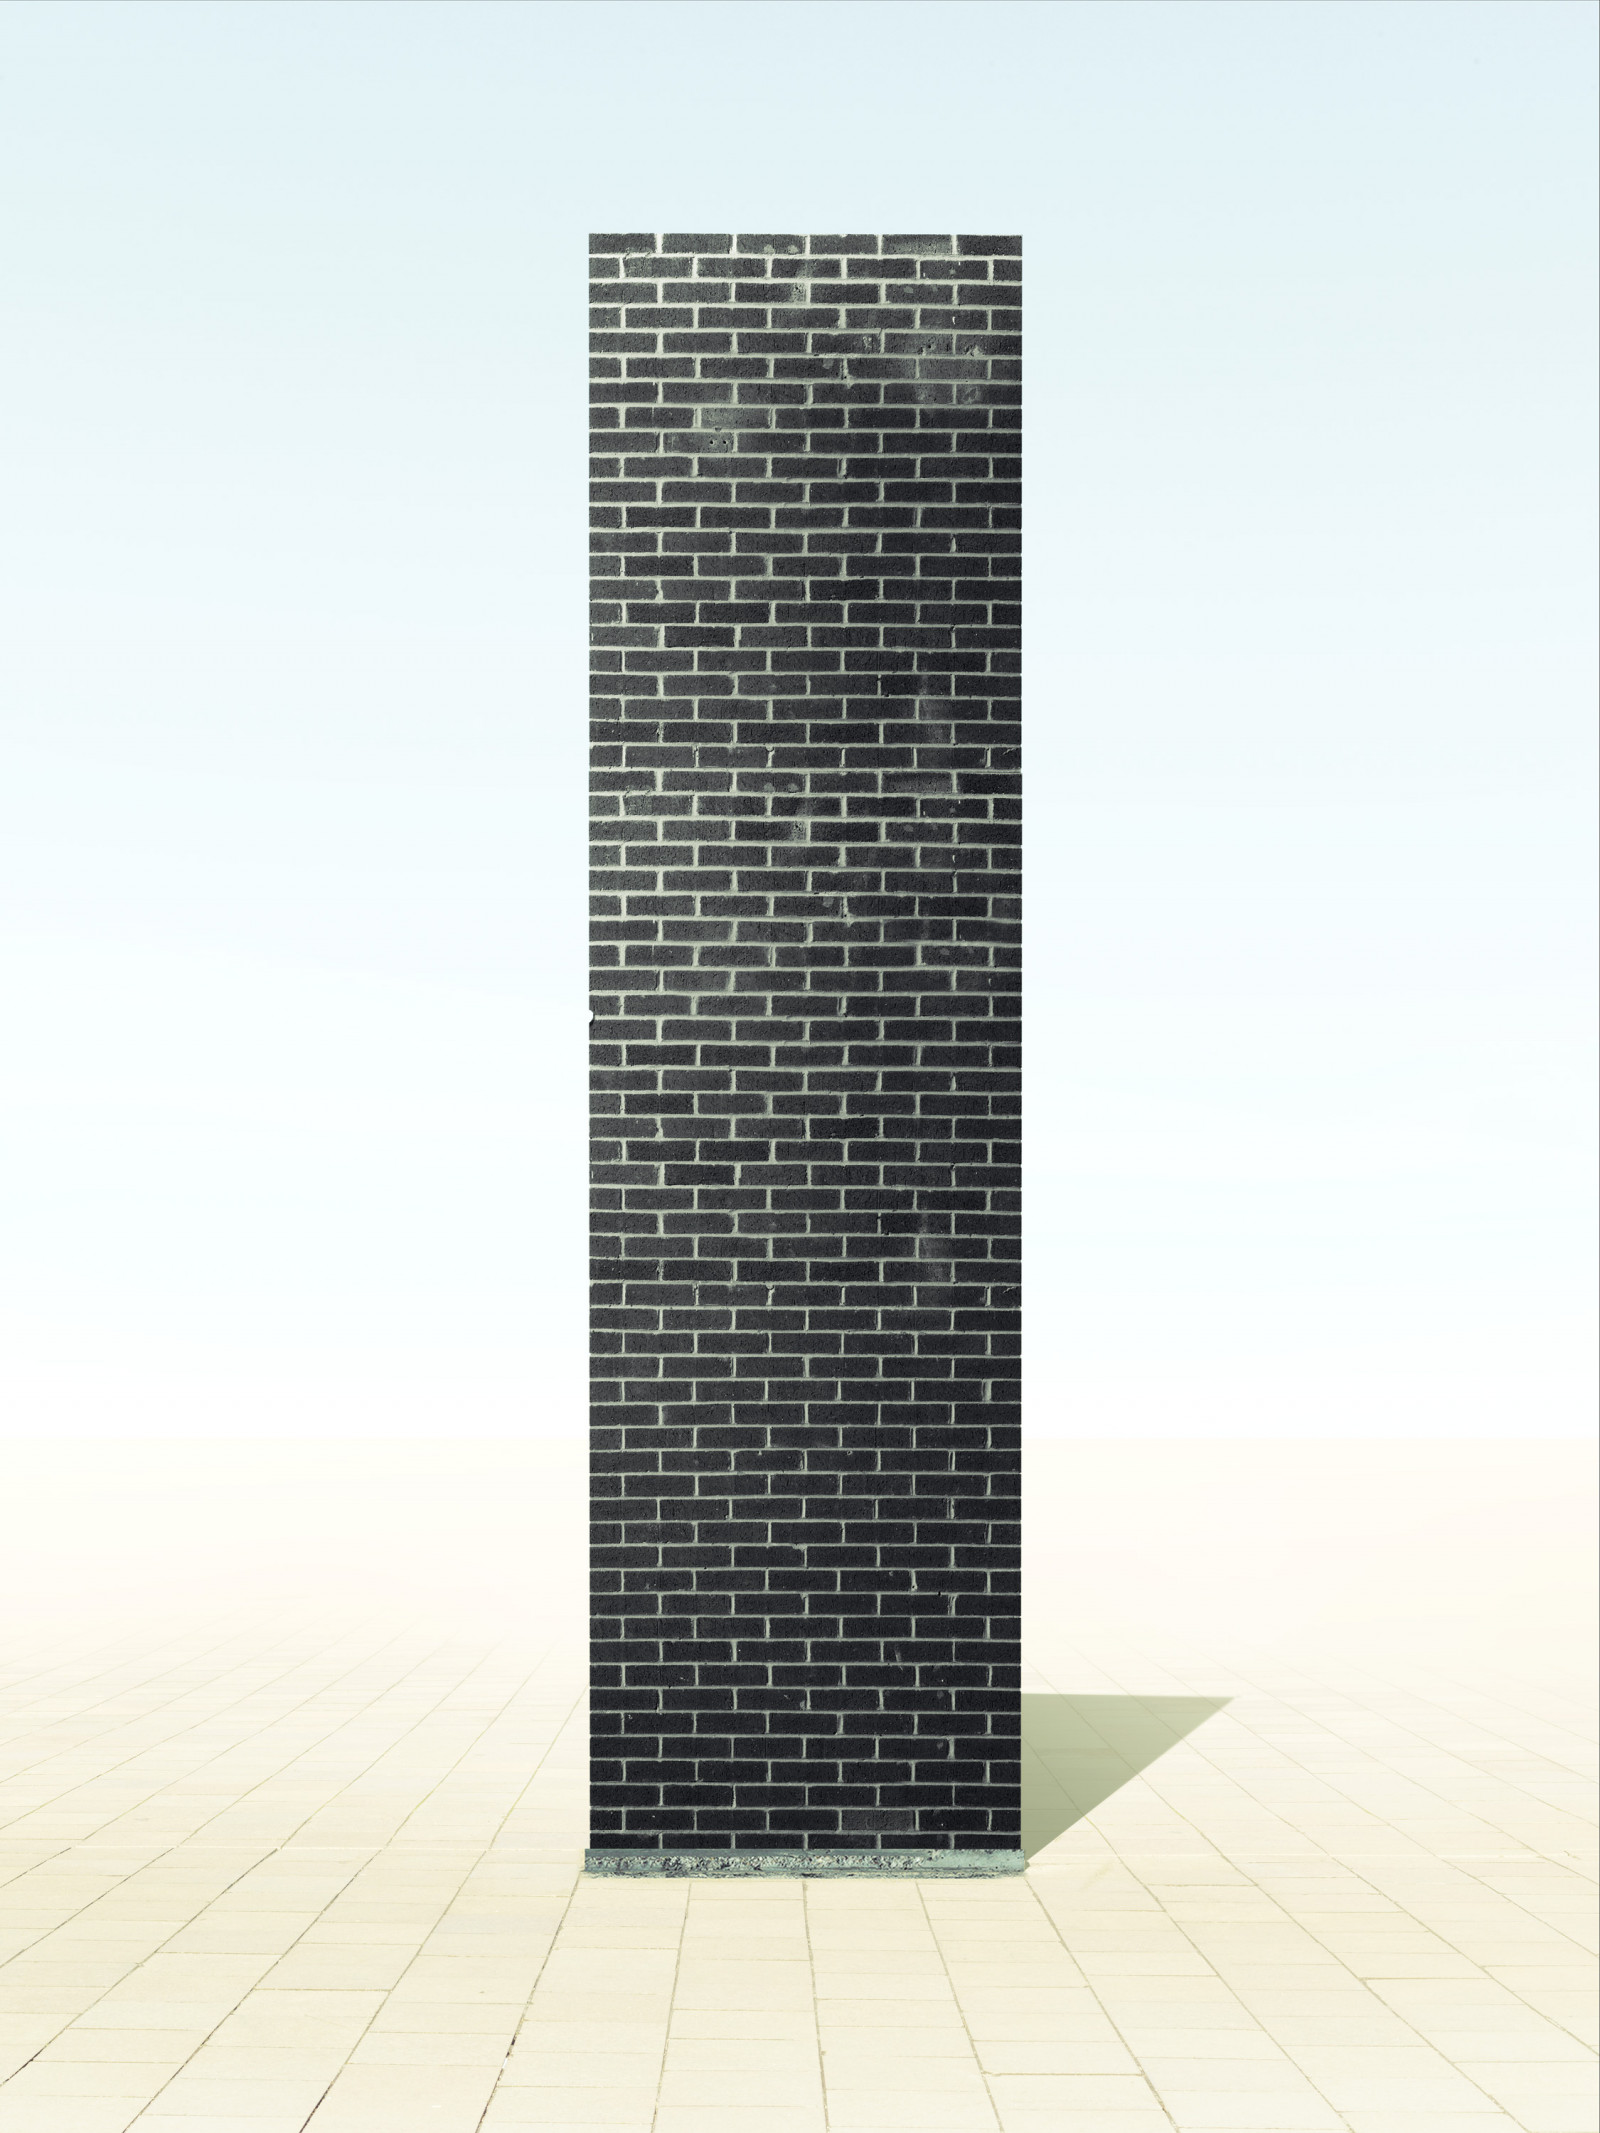 Mystery Monoliths 1 by Clemens ASCHER